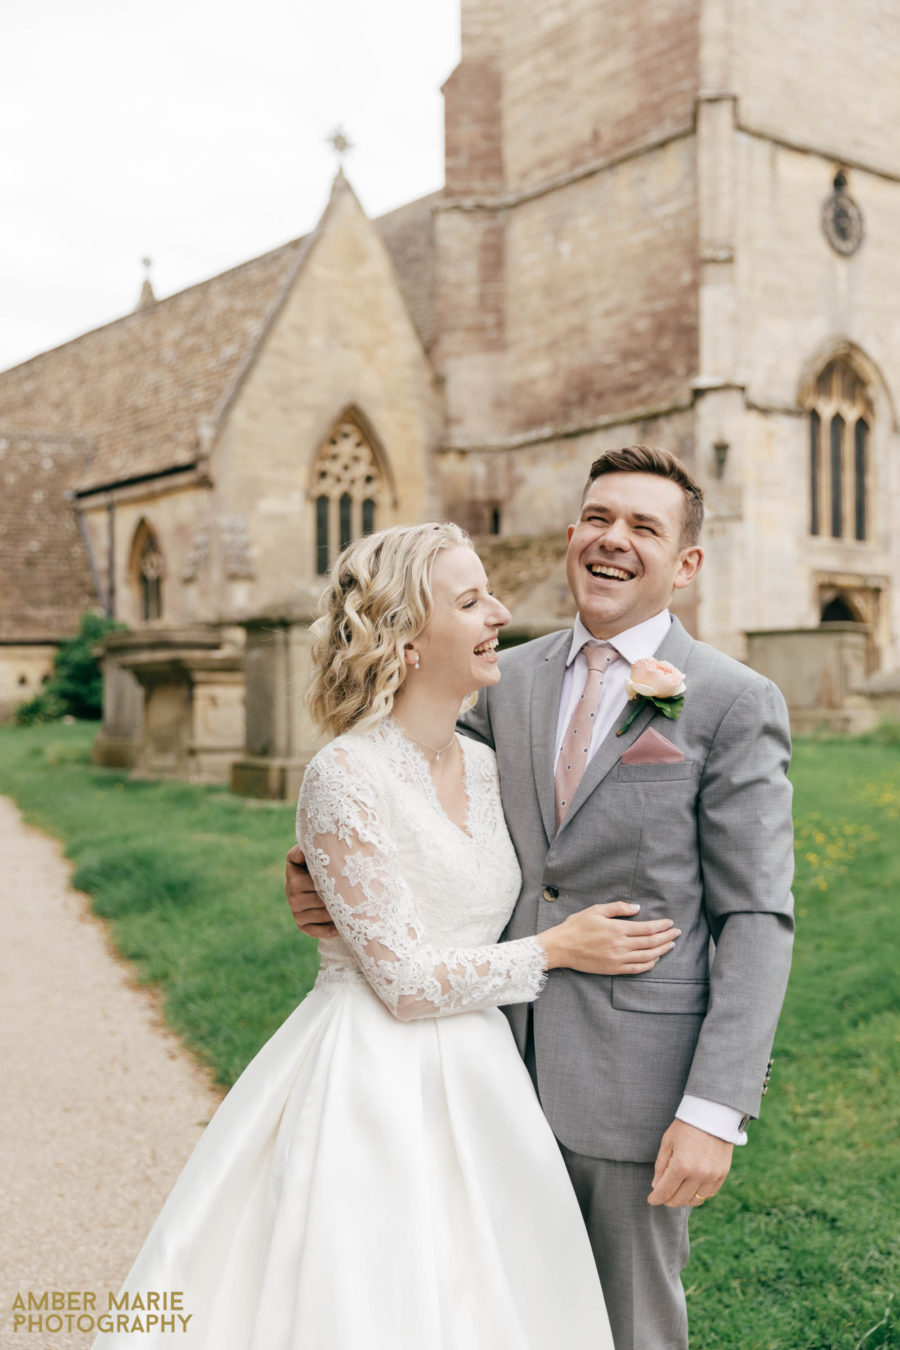 Leah & Louis' Cotswolds Village Hall Wedding